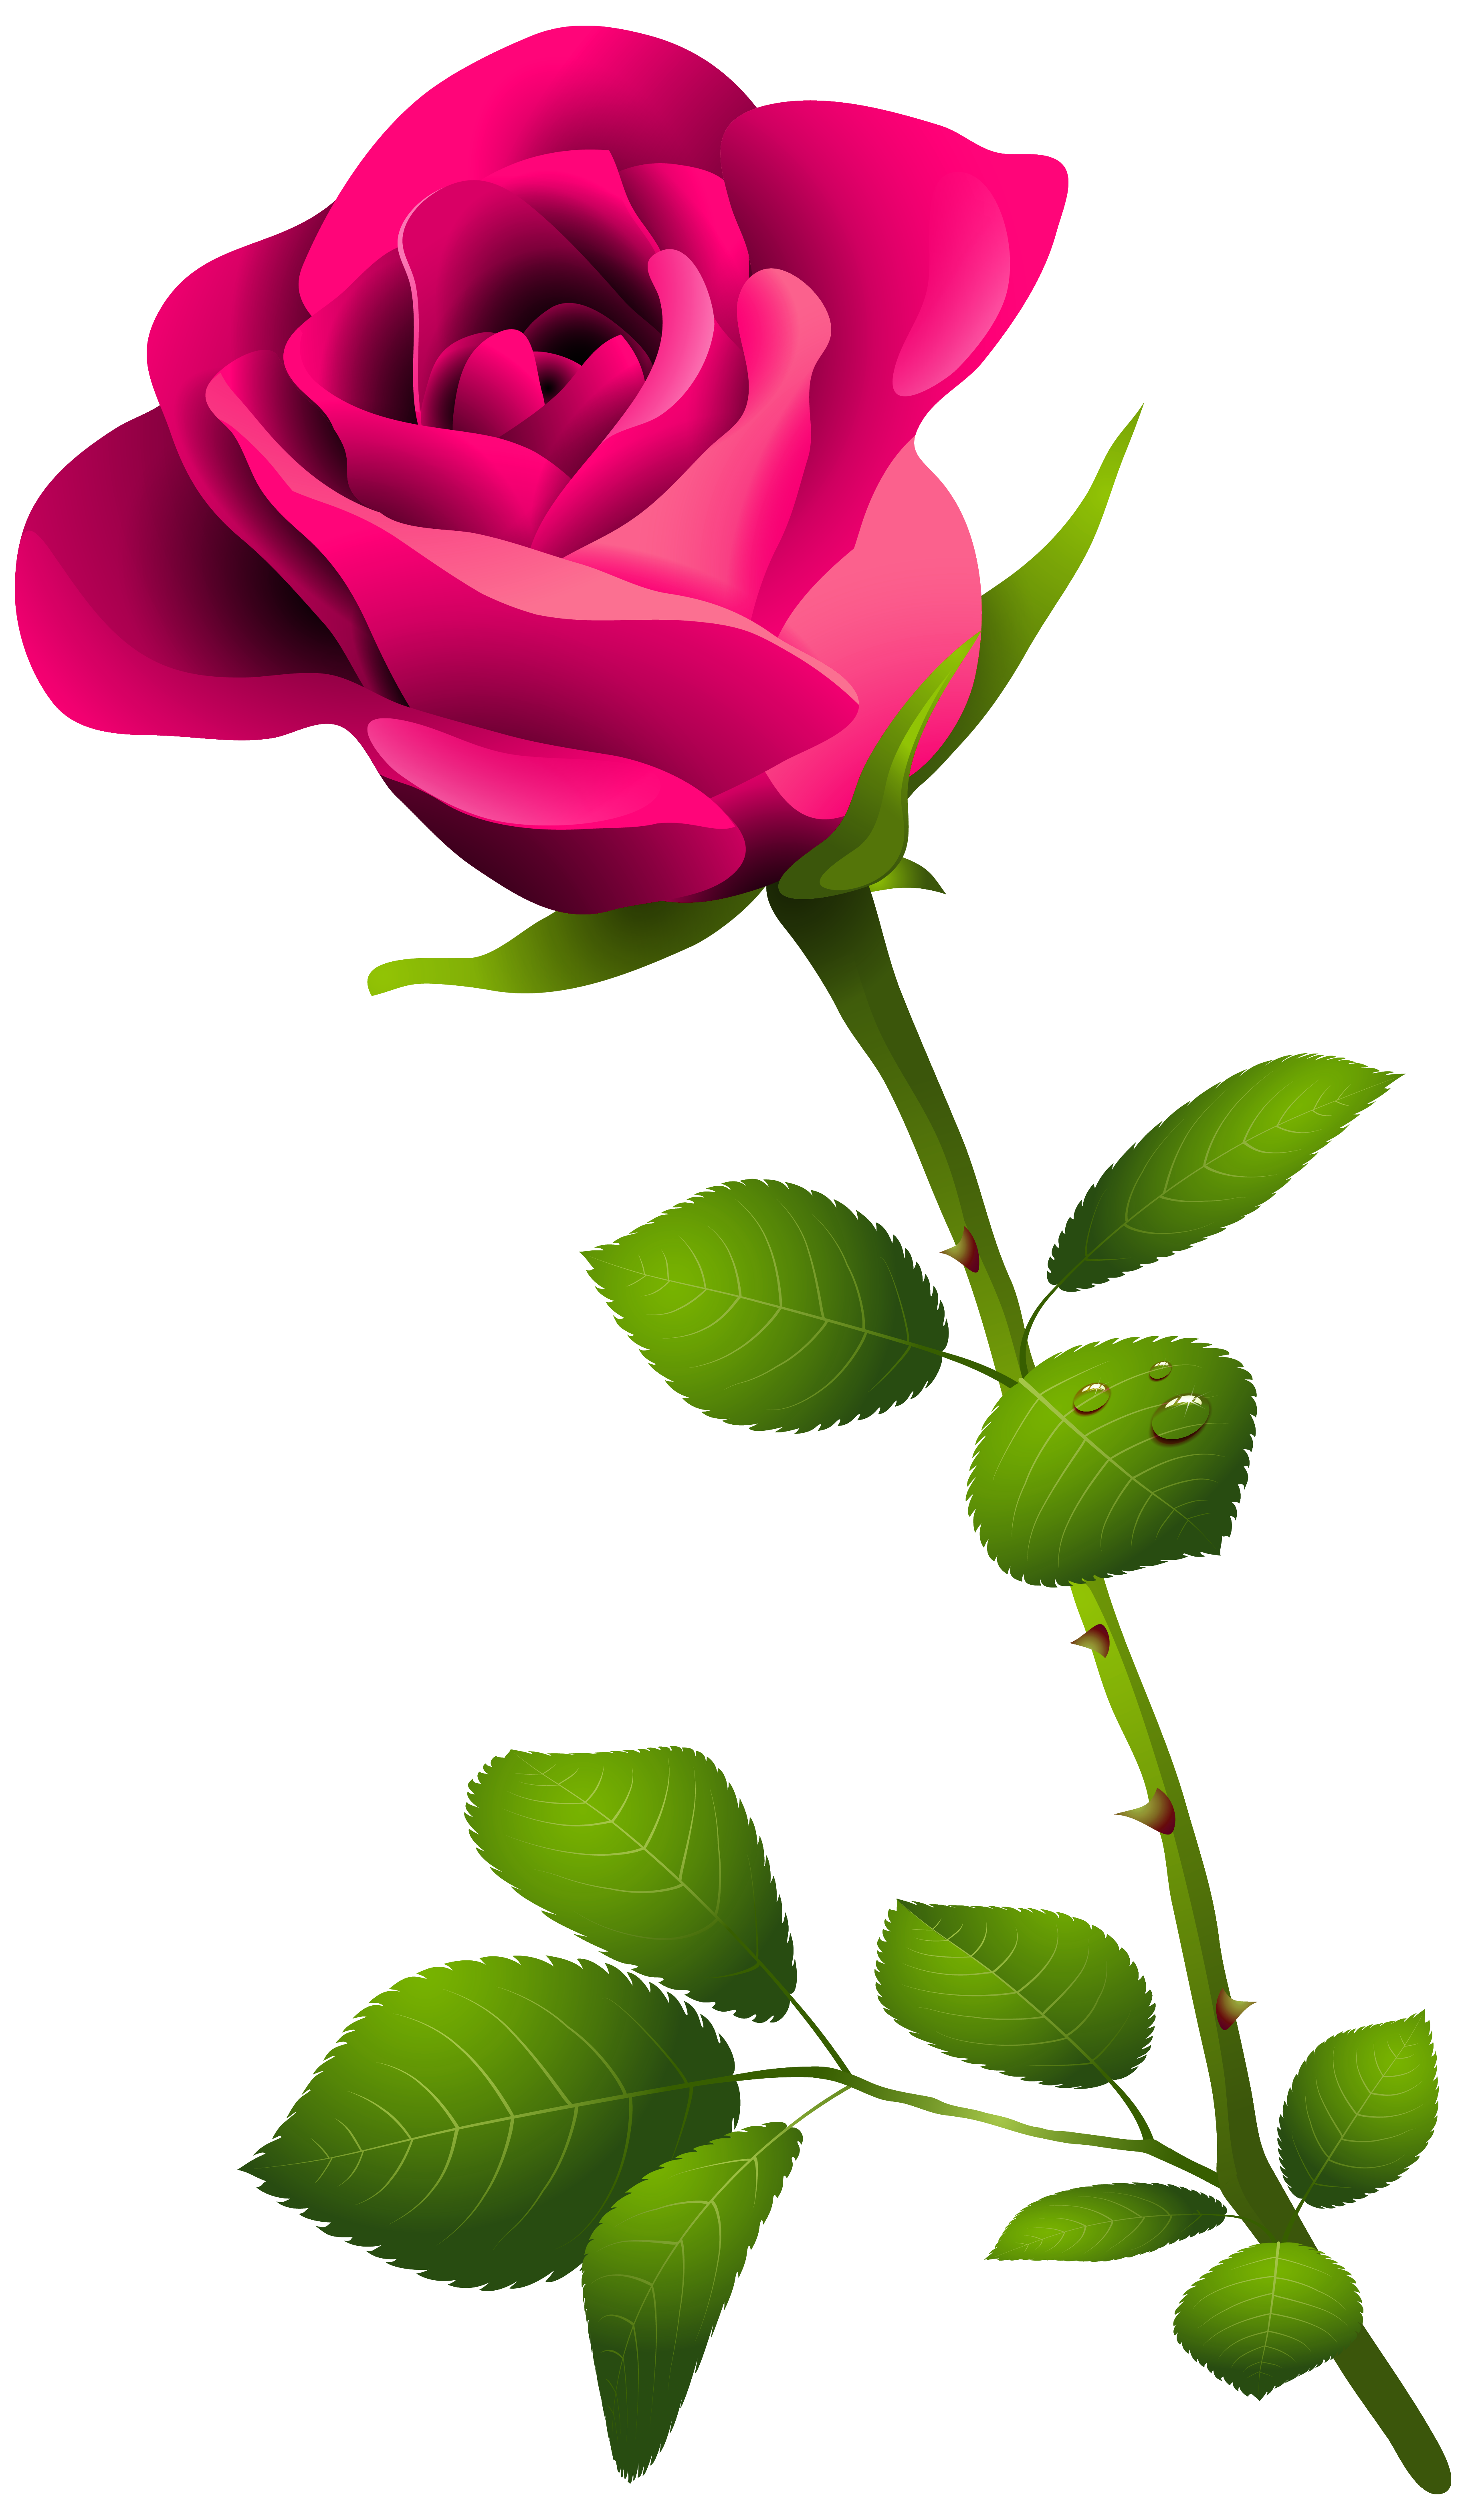 Flower stem png. Pink rose with clipart